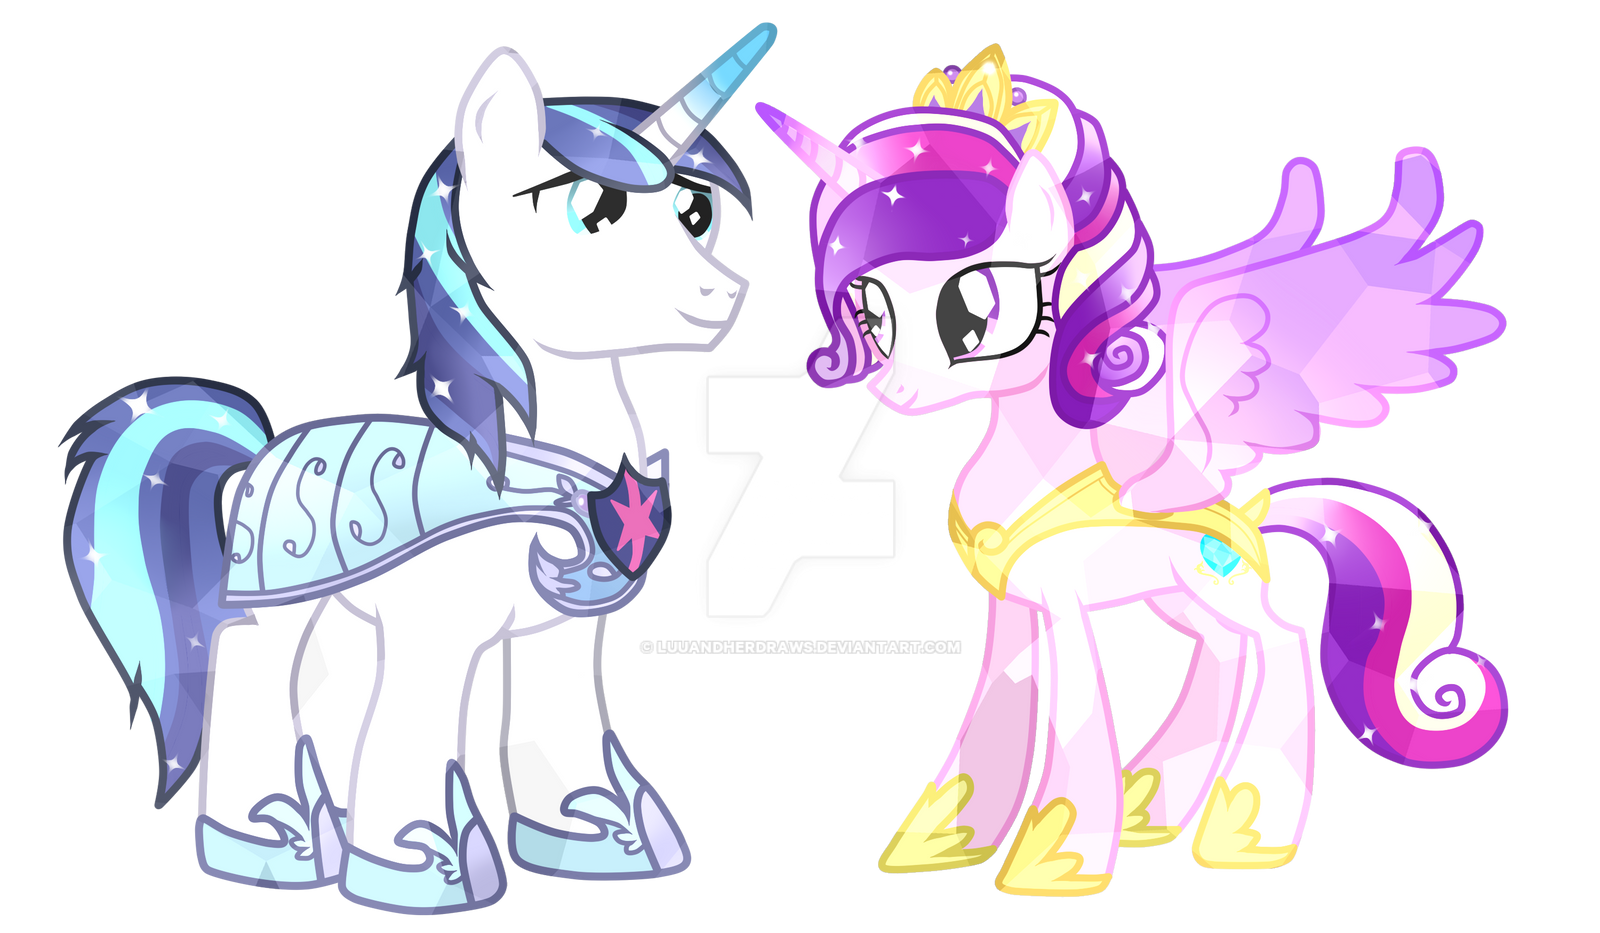 https://img12.deviantart.net/a6ef/i/2015/108/0/9/neo_princess_cadance_and_neo_prince_shining_armor_by_luuandherdraws-d791yak.png How To Draw Princess Cadence And Shining Armor